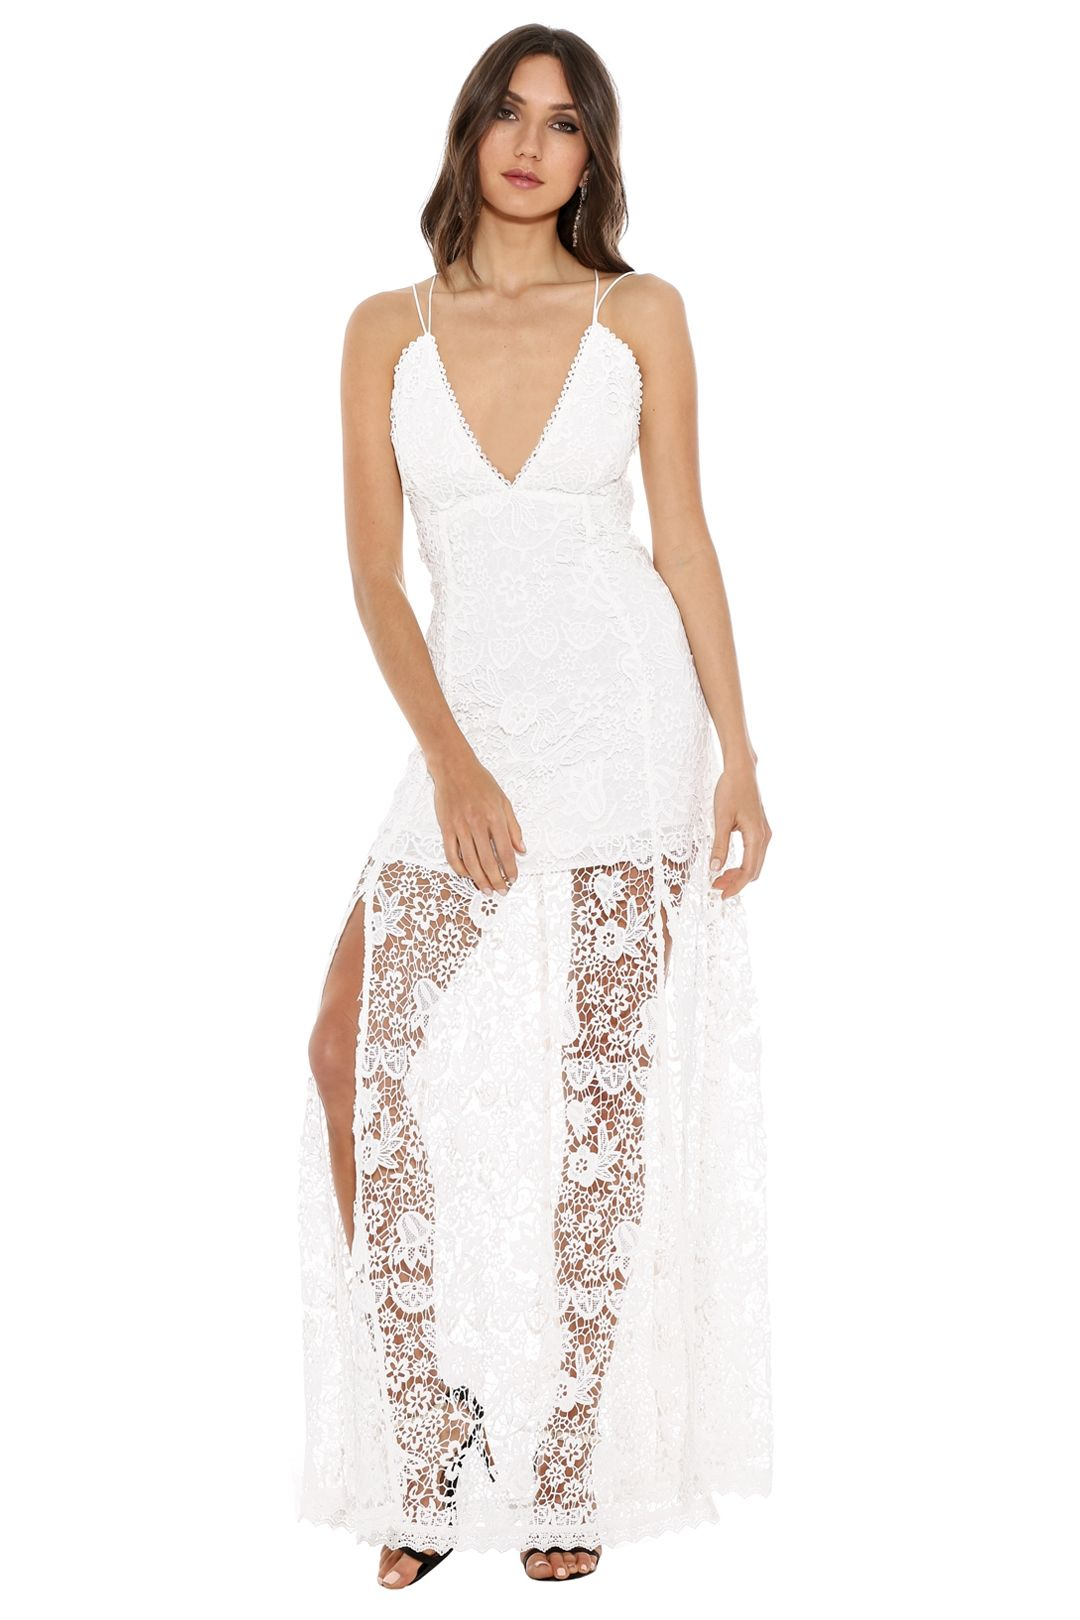 The Jetset Diaries - Fez Maxi Dress - White - Front